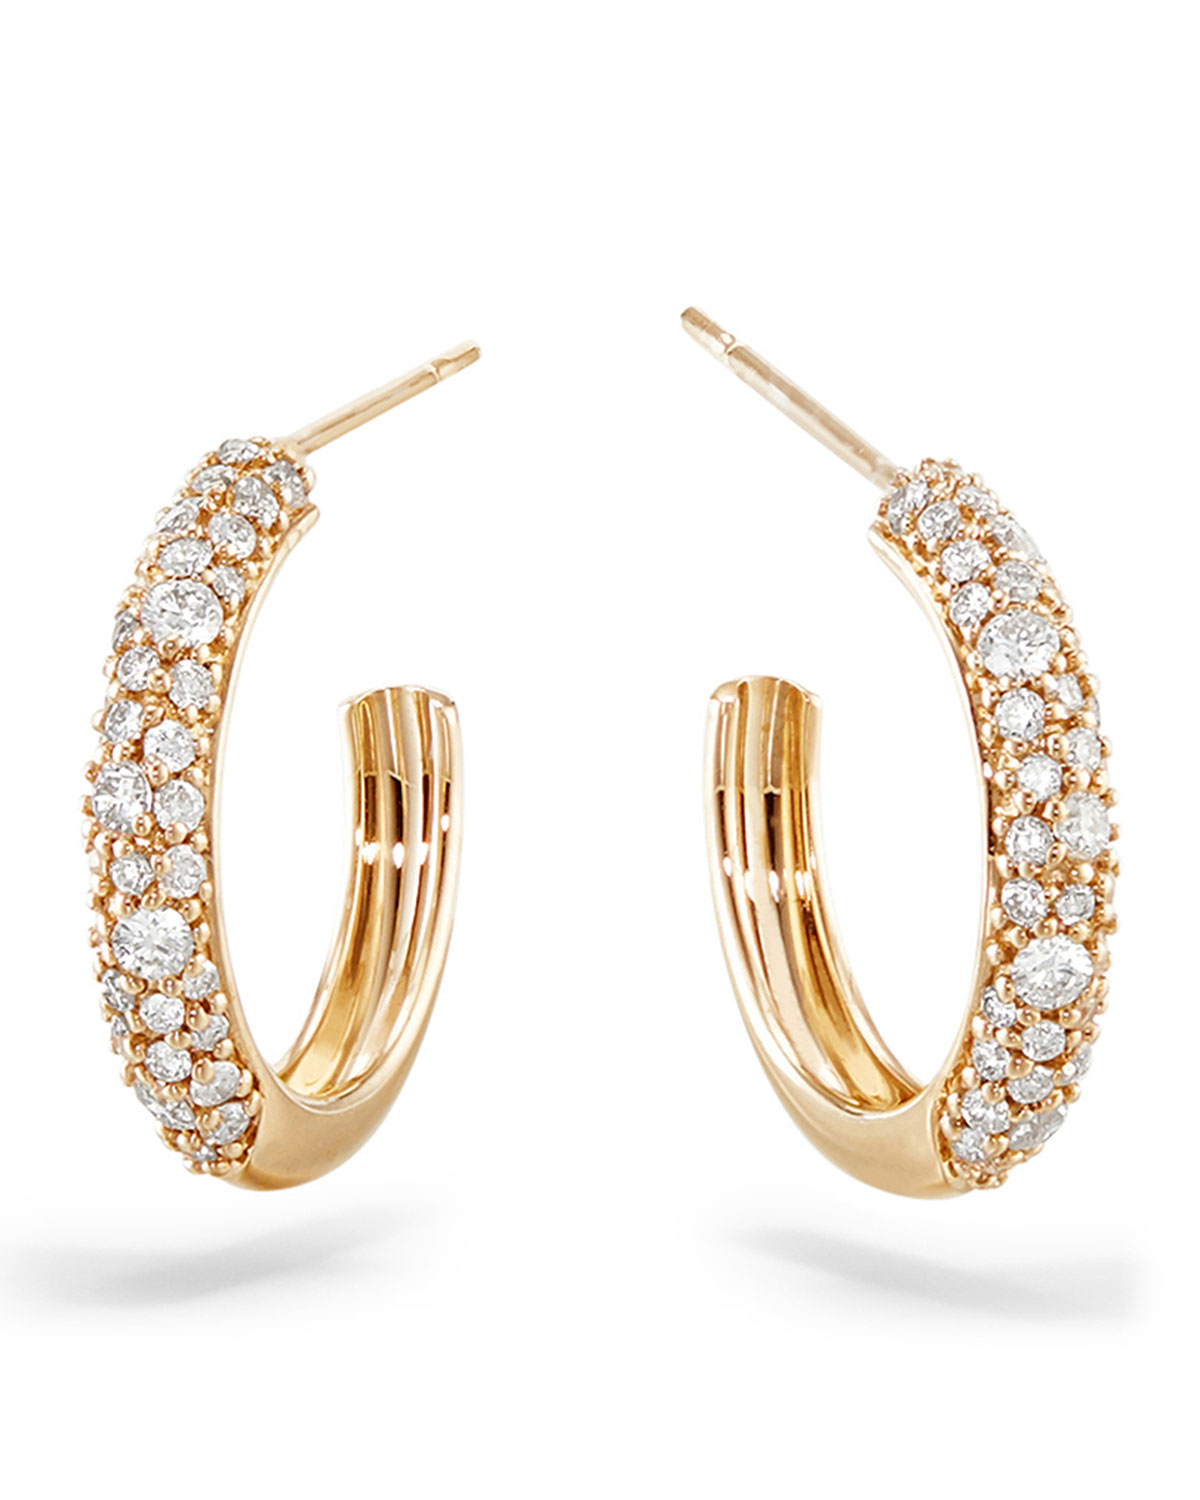 Lana 14k Thin Diamond Cluster Hoop Earrings, 15mm